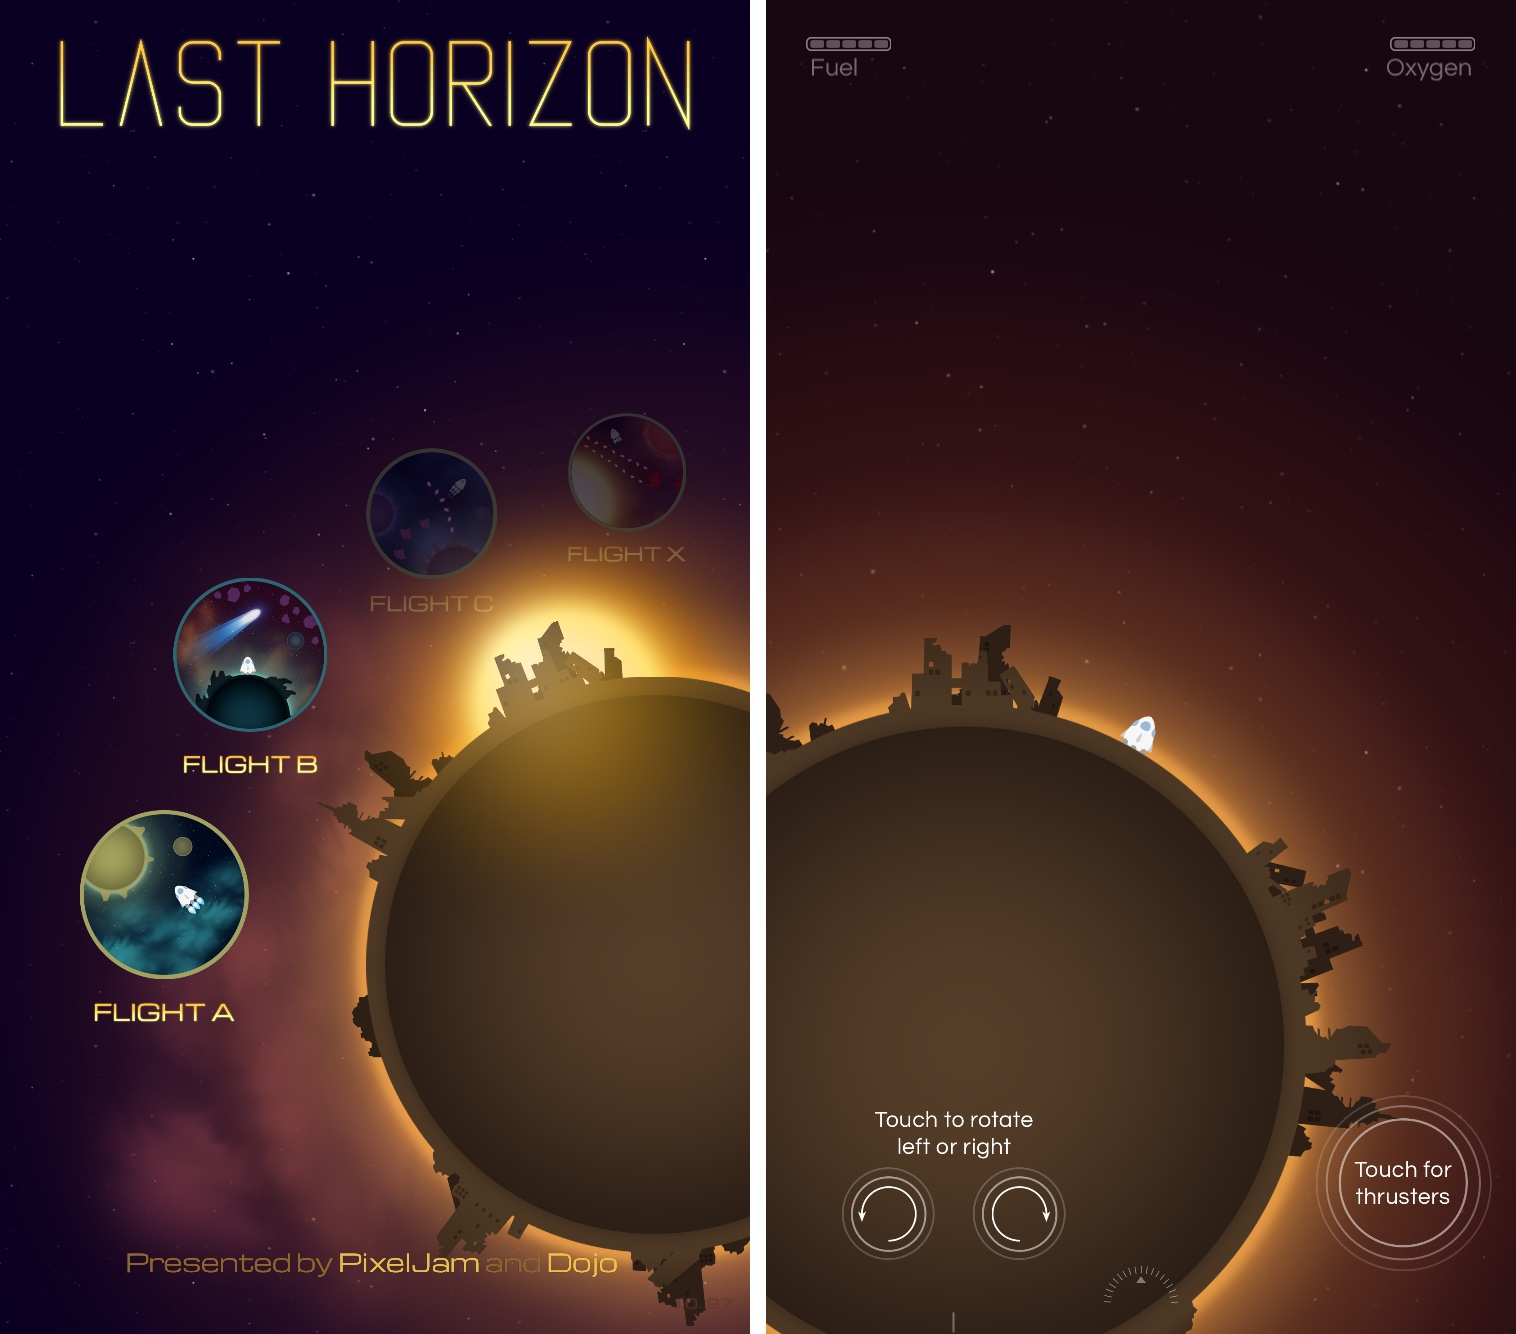 Last Horizon 1.0 for iOS iPhone screenshot 004